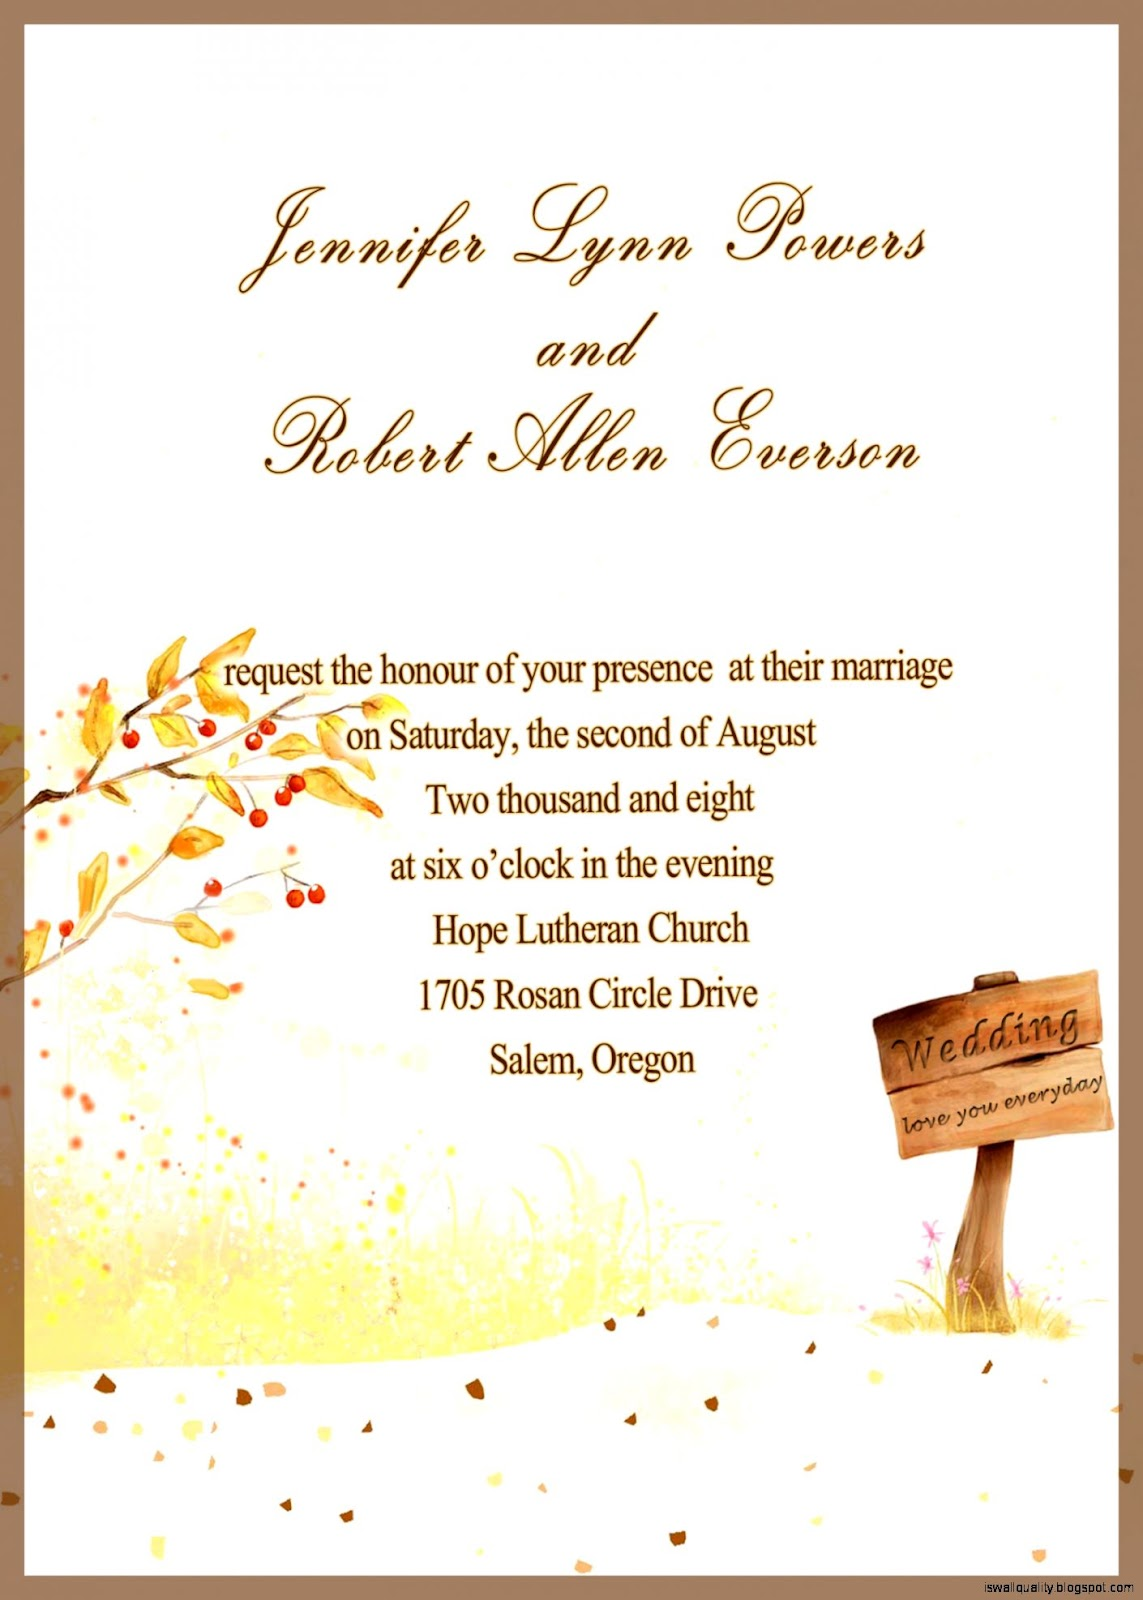 Cheap Wedding Invitations Hd Wallpapers Quality